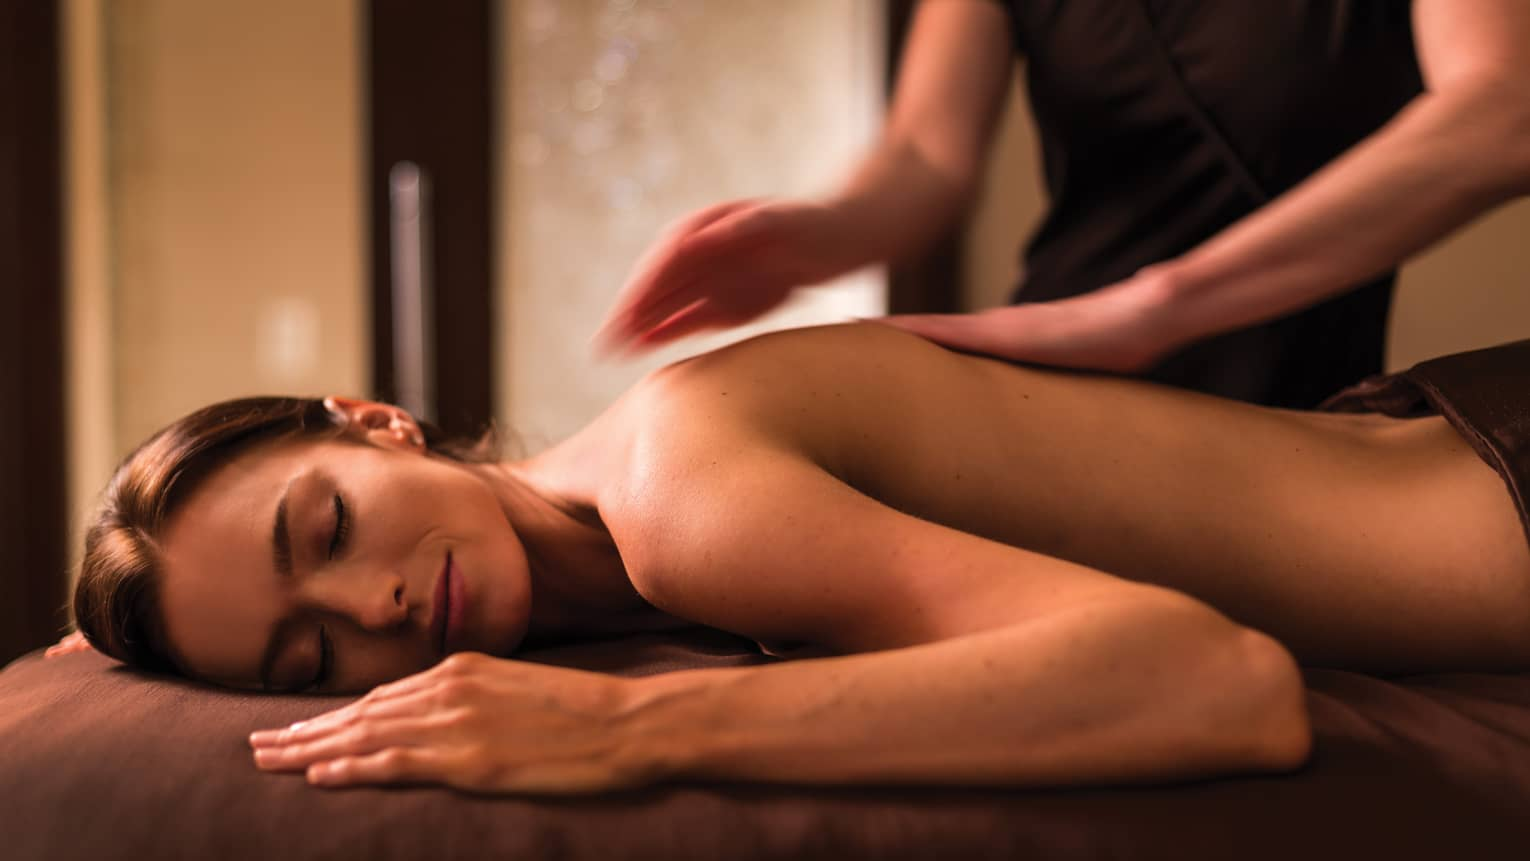 Woman with eyes closed lies on massage table in dimly-lit spa room